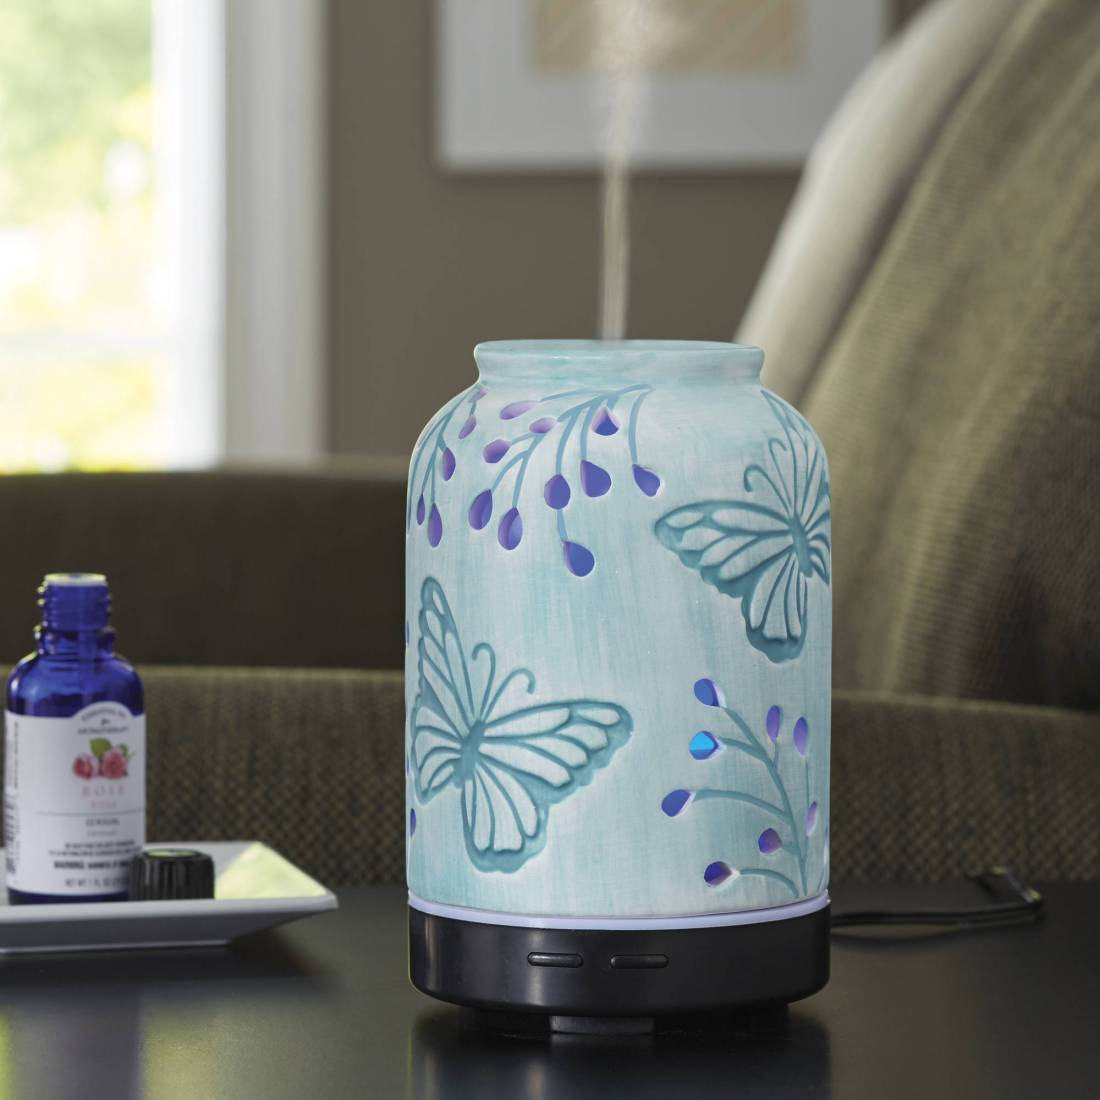 Better Homes & Gardens Tranquil Butterfly Essential Oil Diffuser